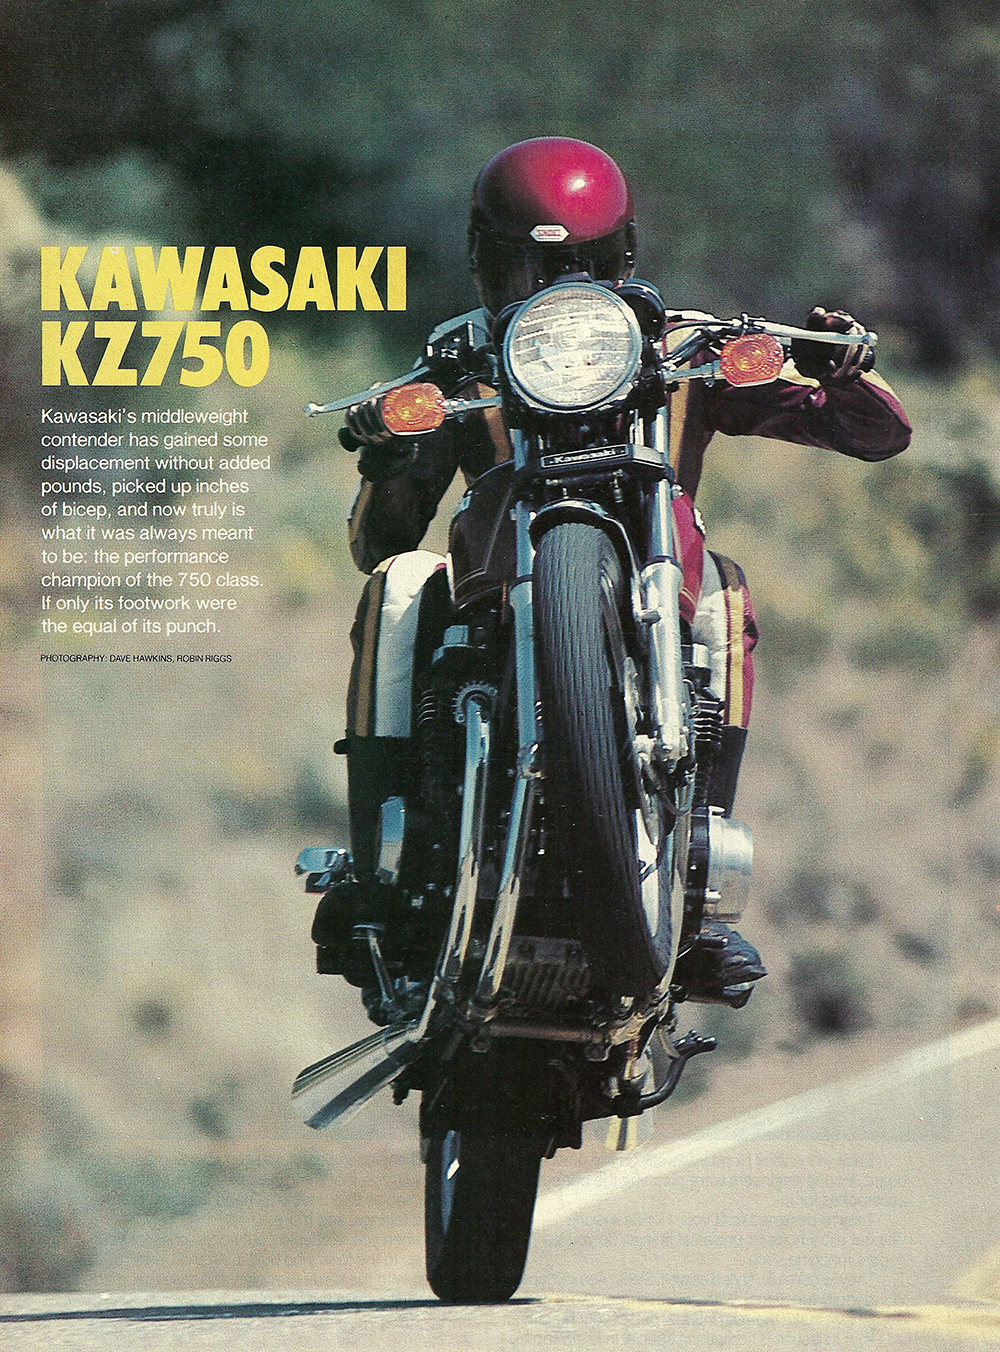 1980 Kawasaki KZ750 road test 01.jpg